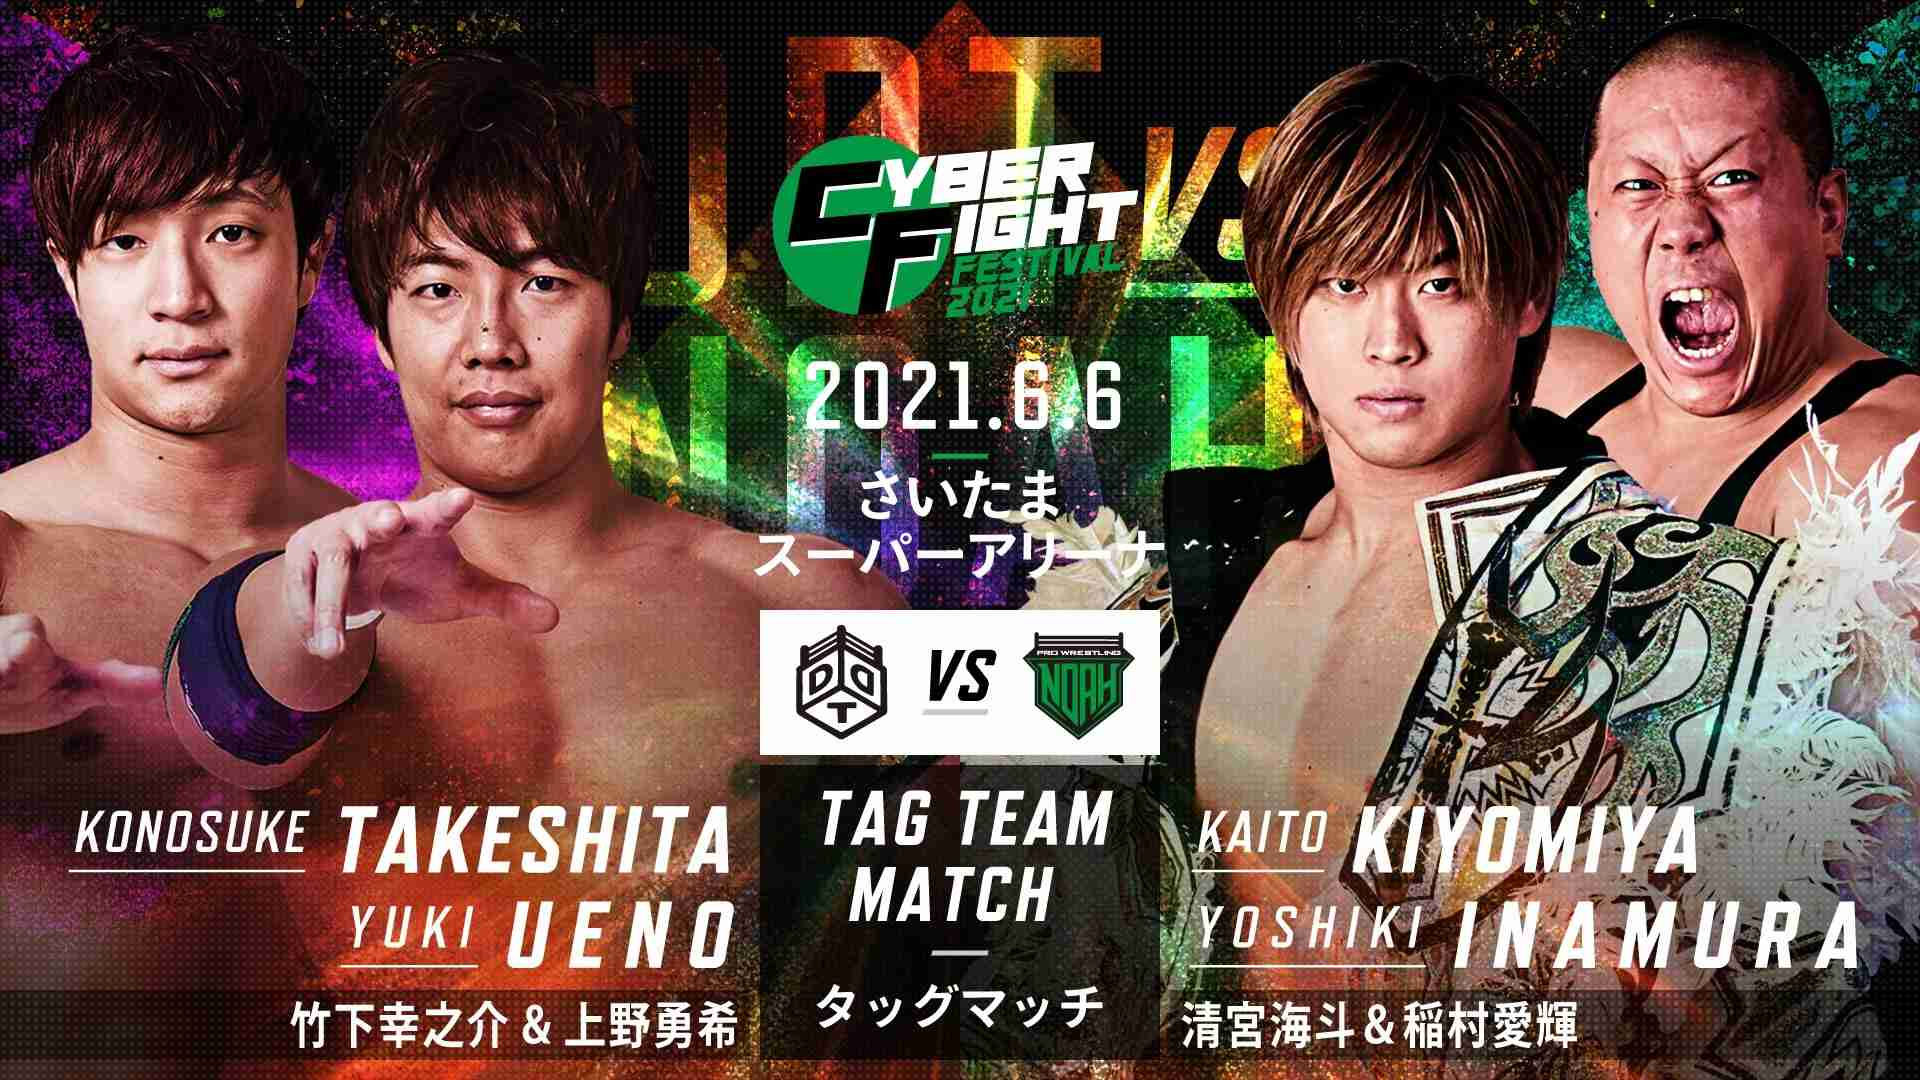 takeshita ueno vs kiyomiya inamura cyberfight festival 2021 compressed